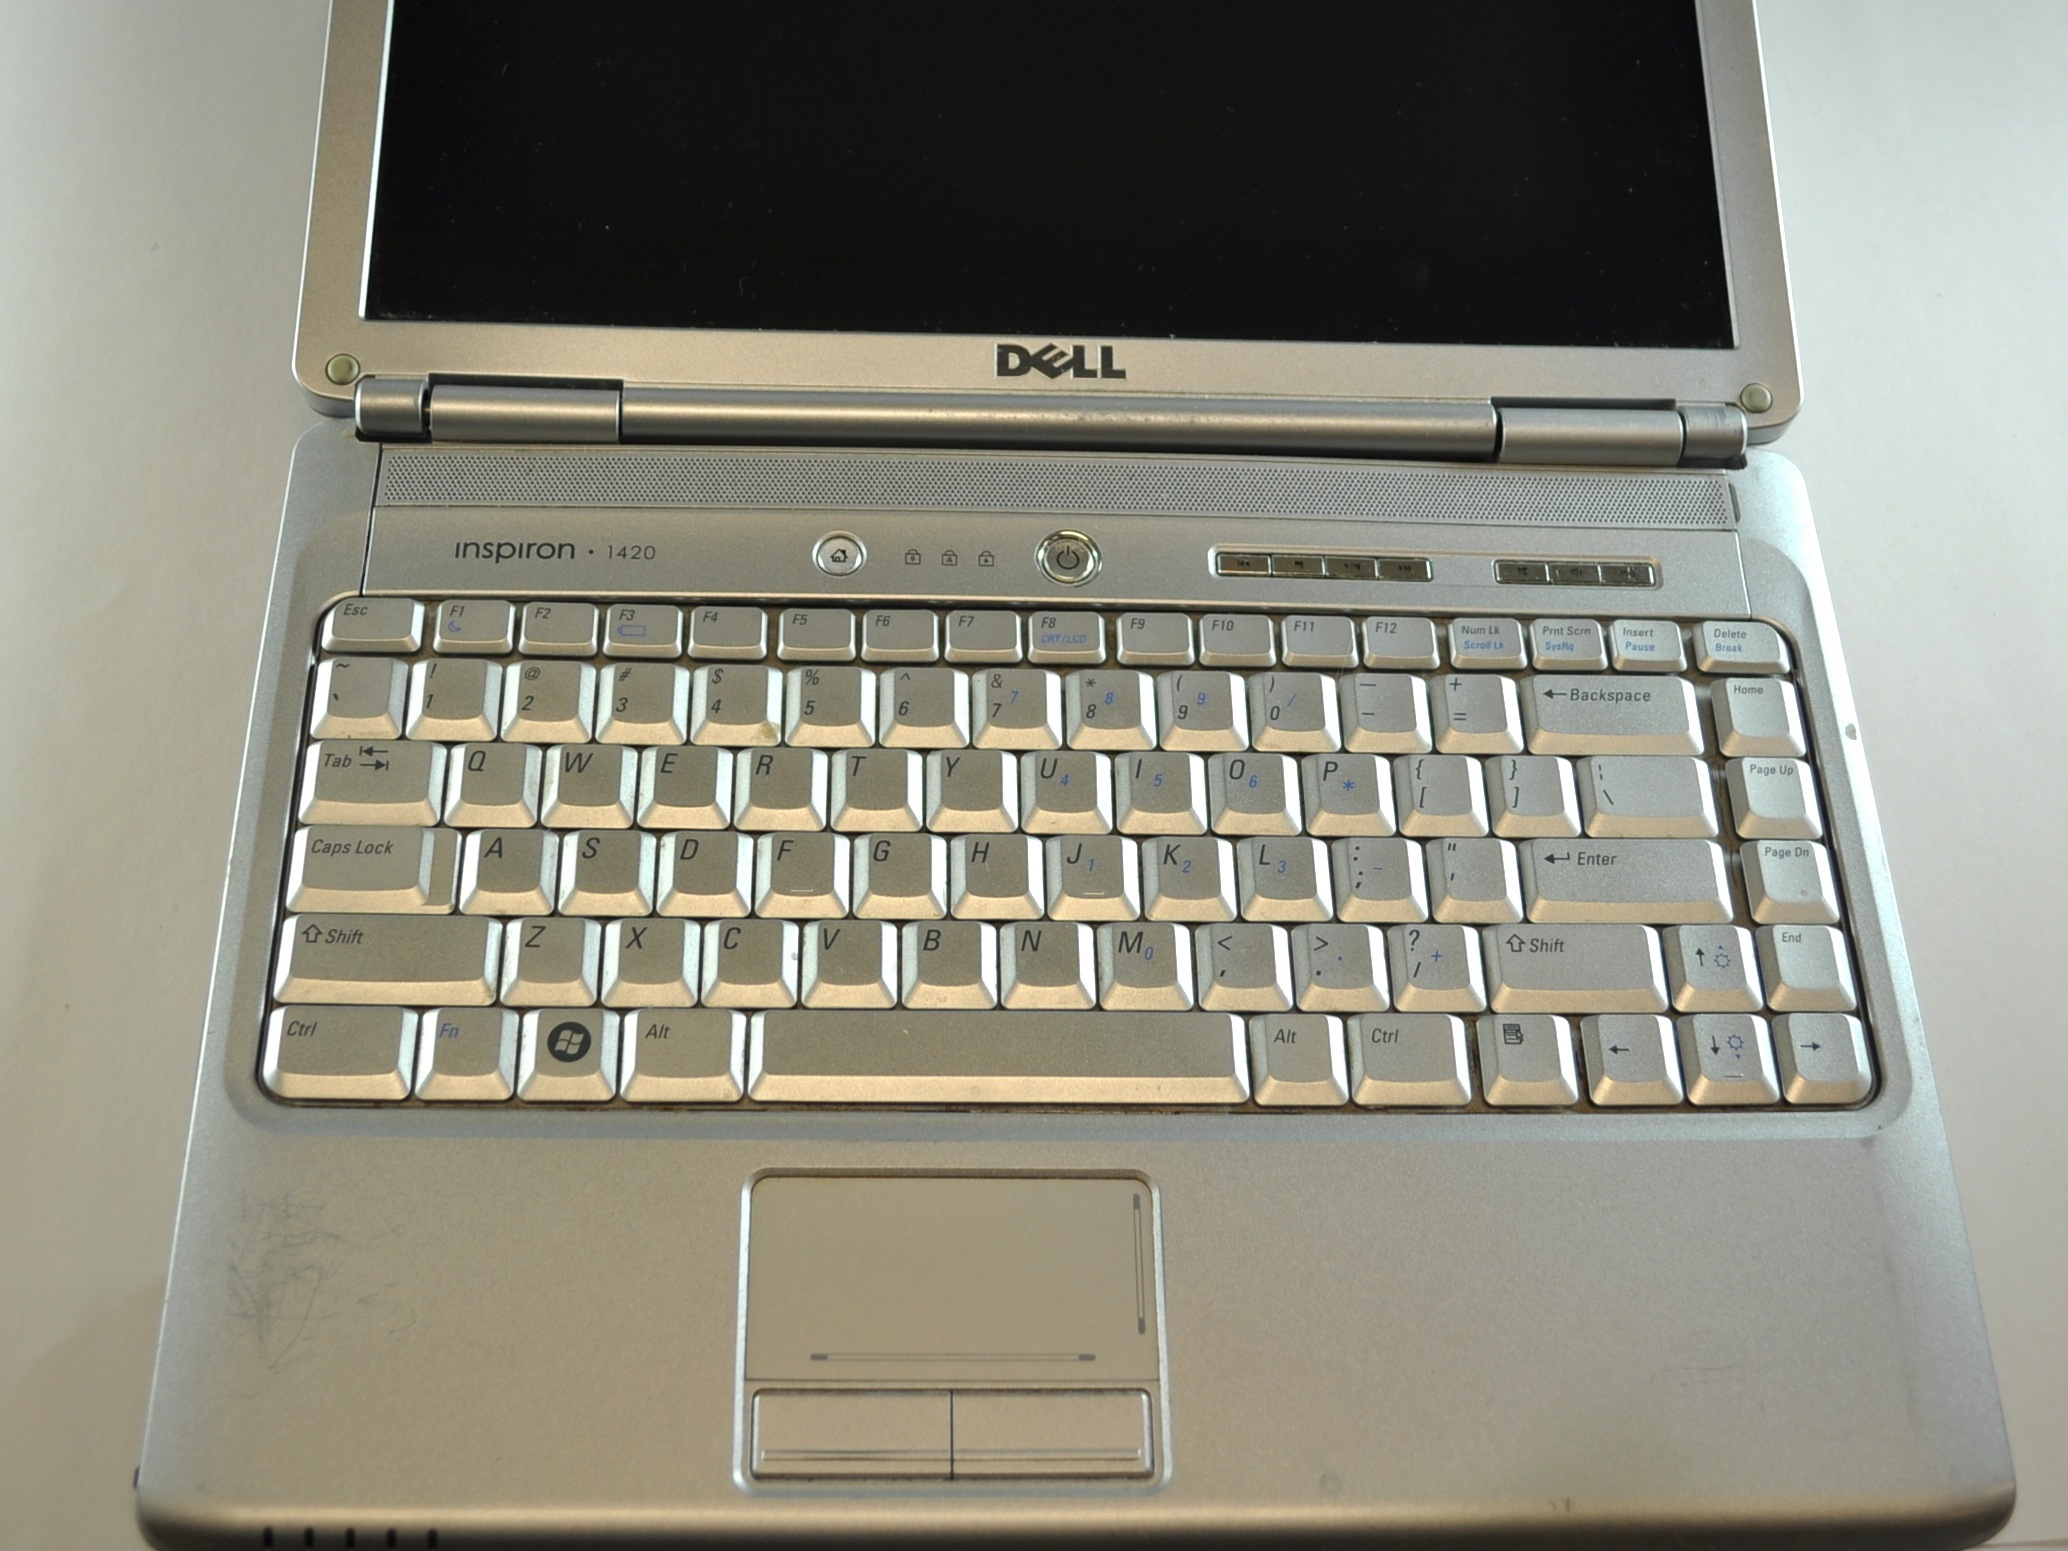 dell inspiron 1420 manual pdf